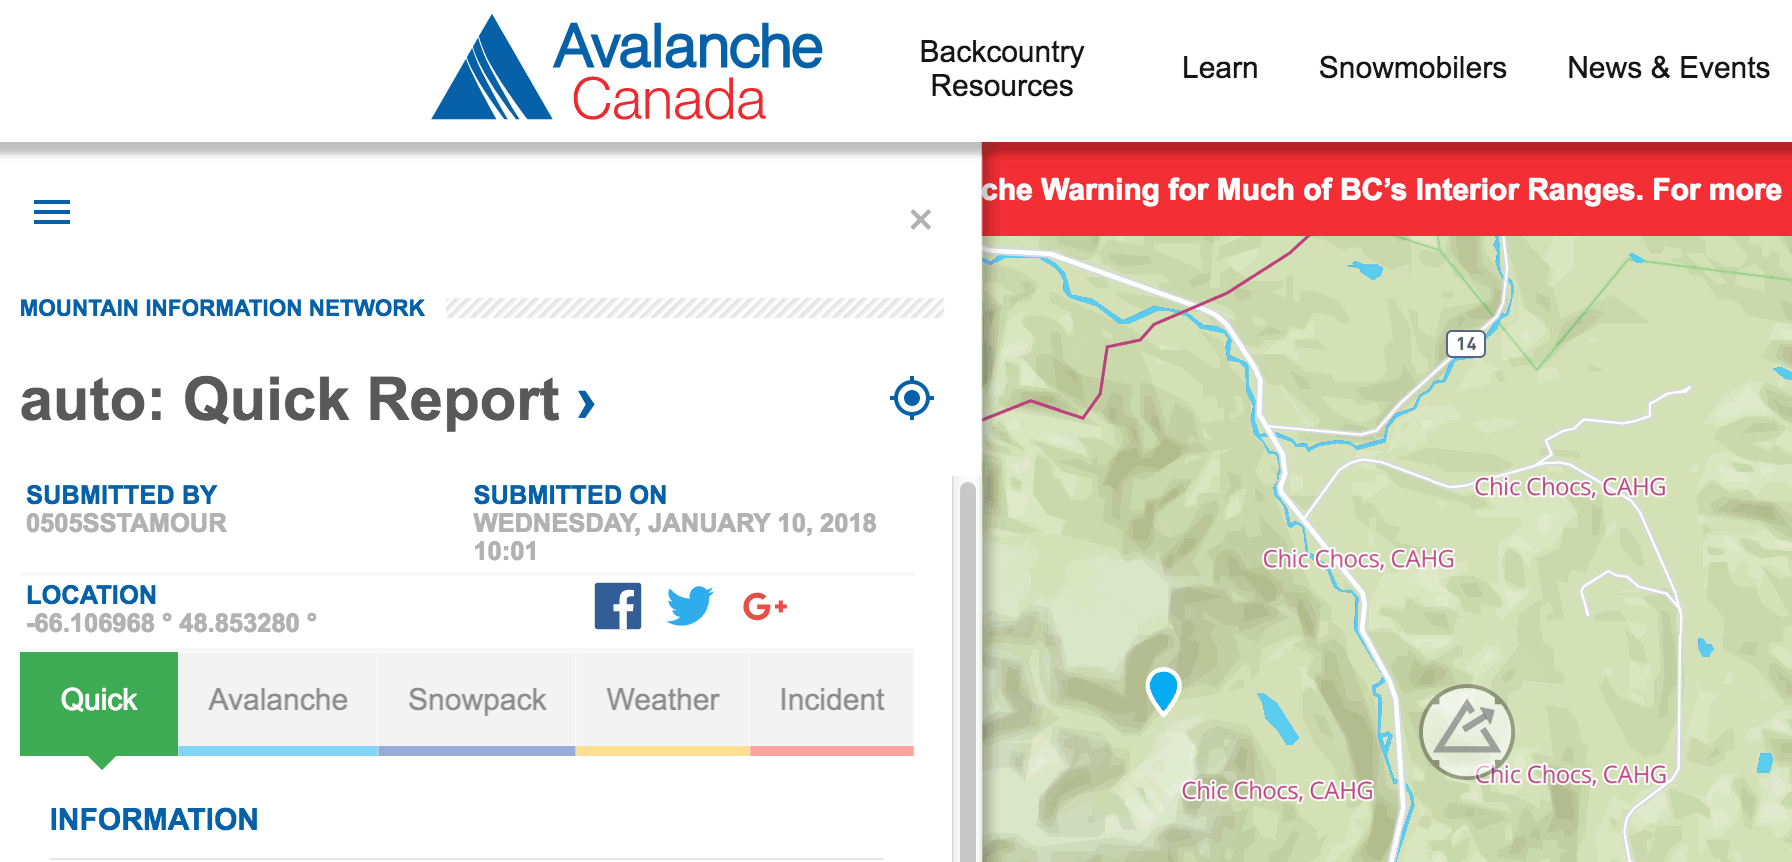 Mountain_information_network_avalanchecanada